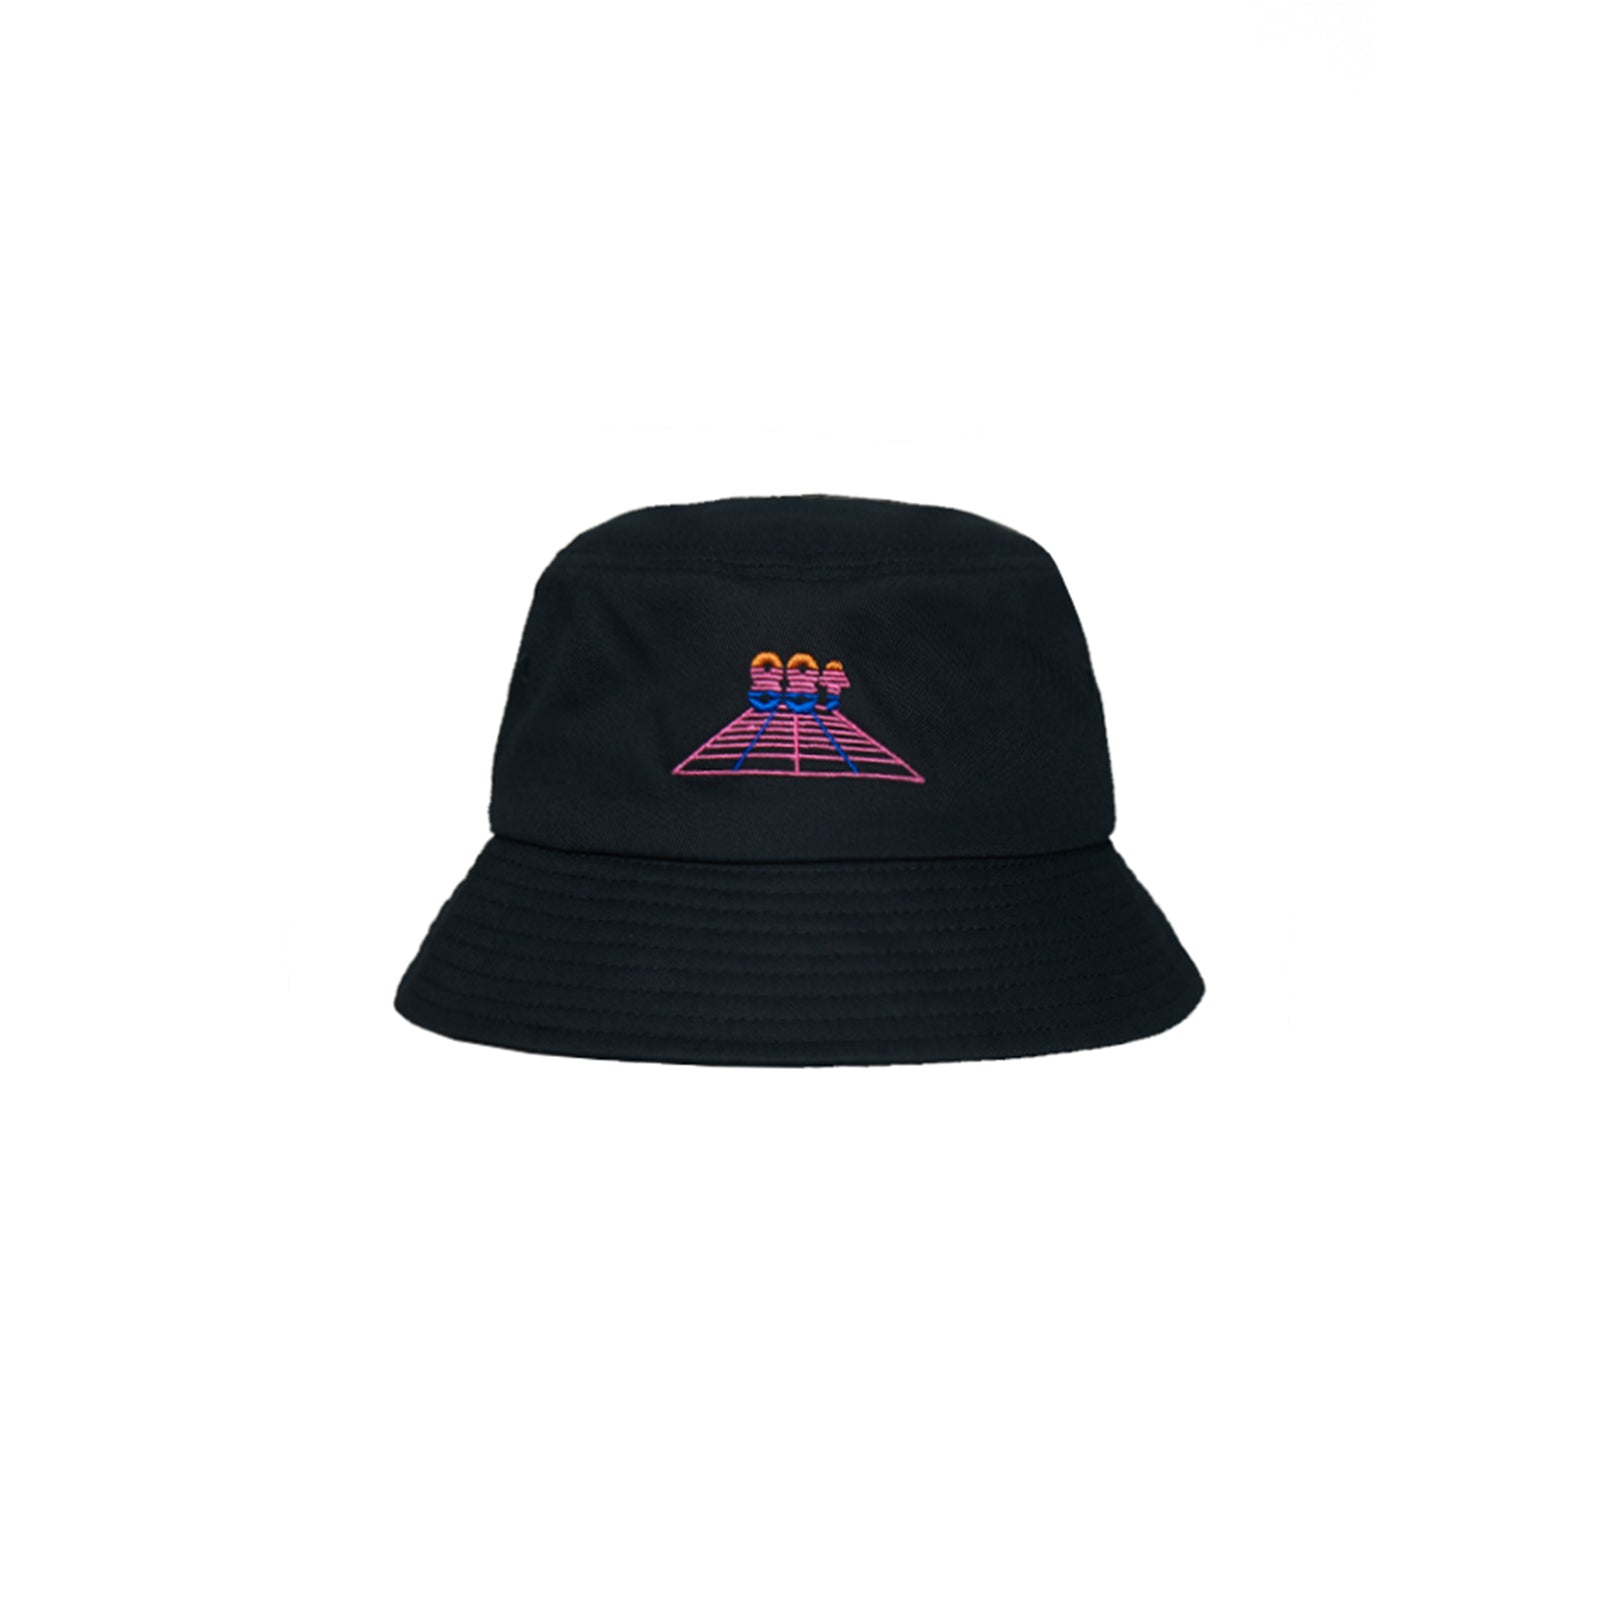 RETRO HEAT EMBROIDERED BUCKET HAT